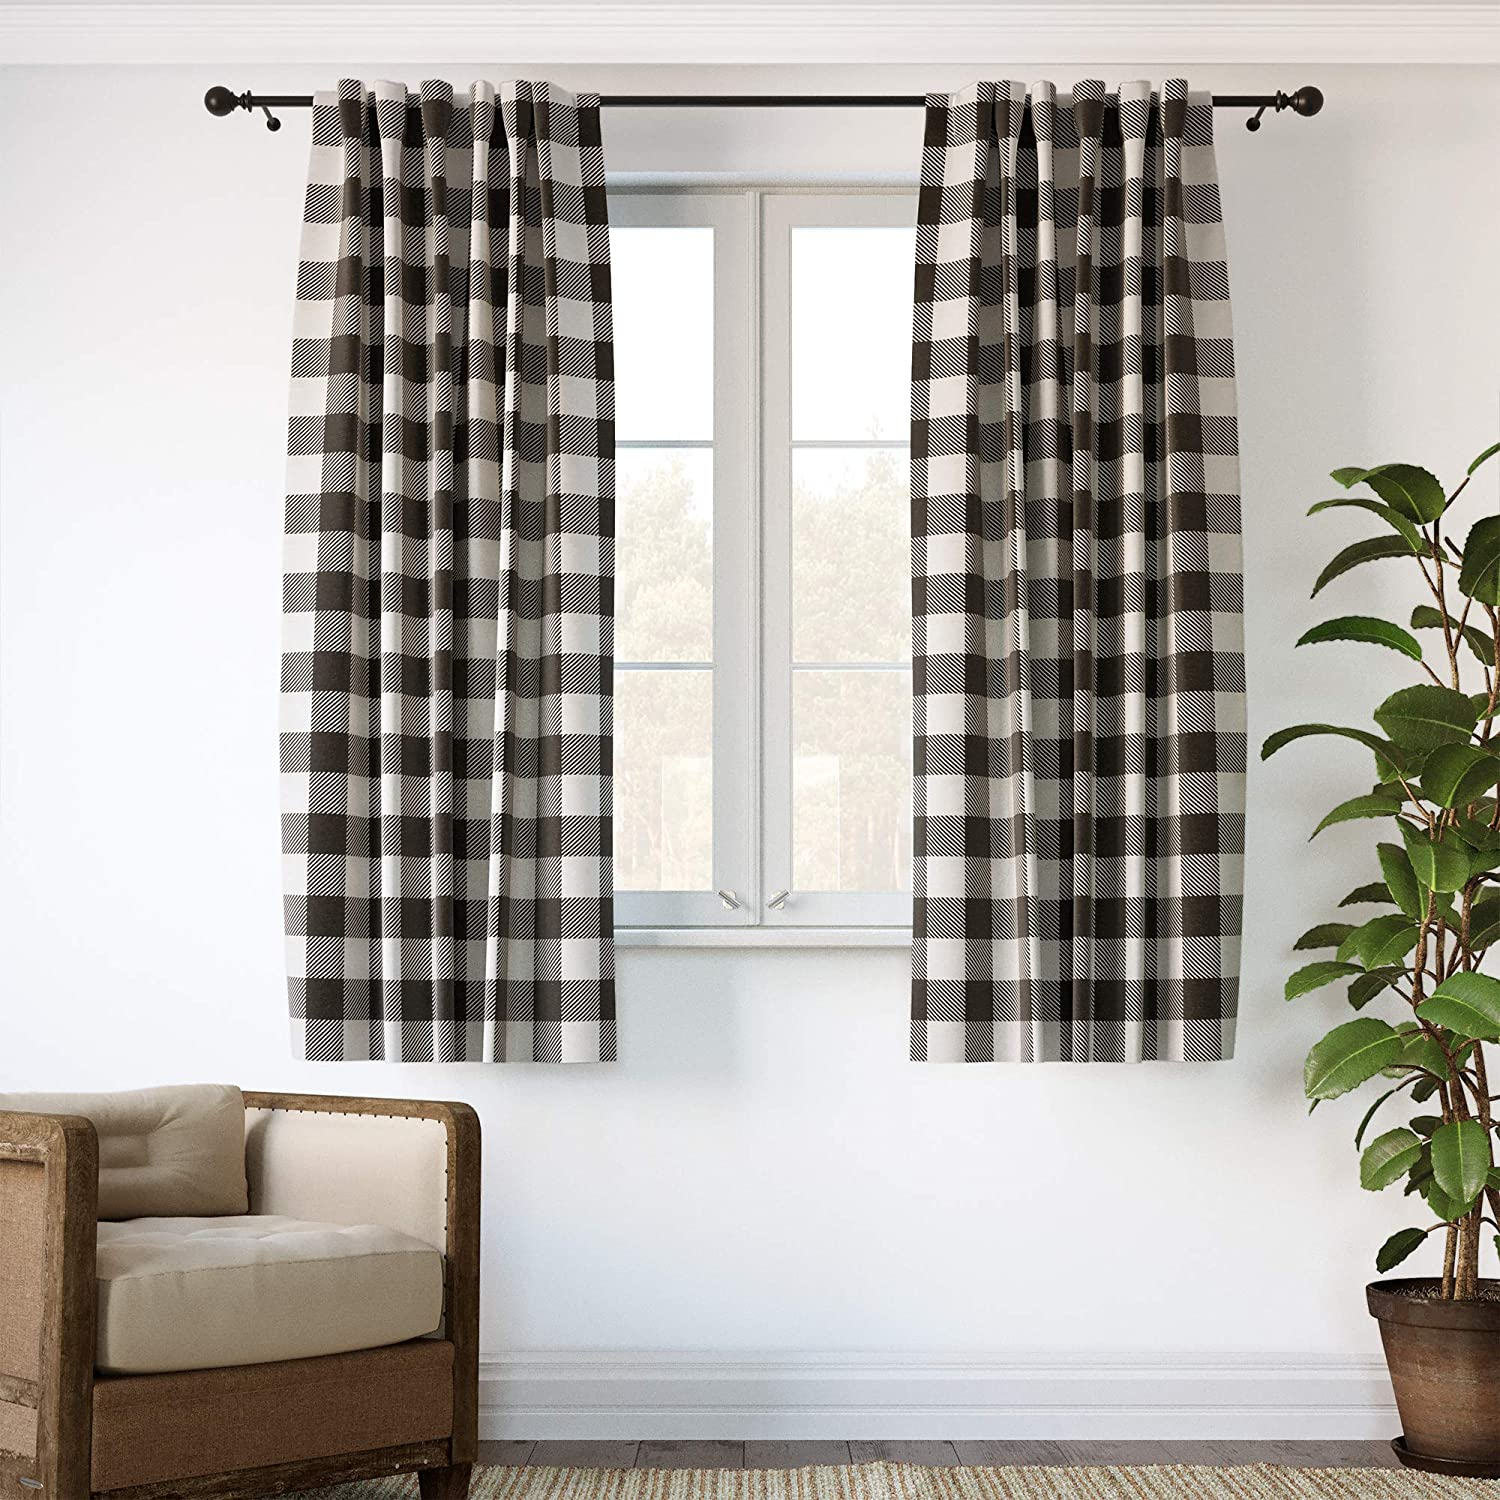 """Barnyard Designs Buffalo Plaid Window Curtain Panels for Kitchen, Living Room, Bedroom, Graphite and Ivory Gingham Check Rod Pocket Curtains, Farmhouse Country Home Decor, 52"""" x 72"""", Set of 2"""